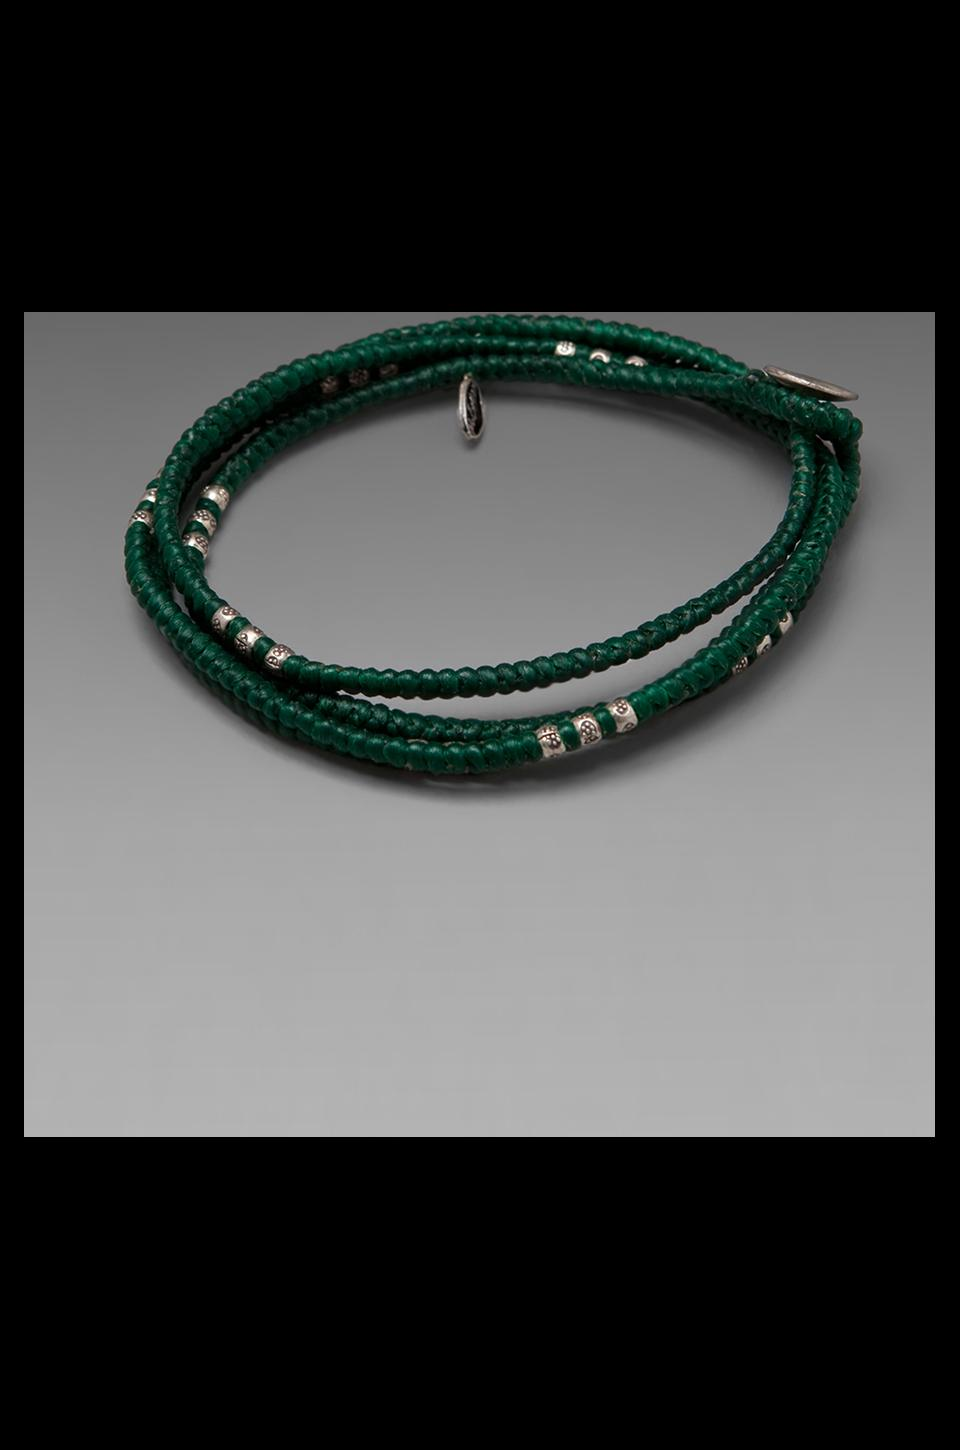 M.Cohen Wrap Bracelet in Green